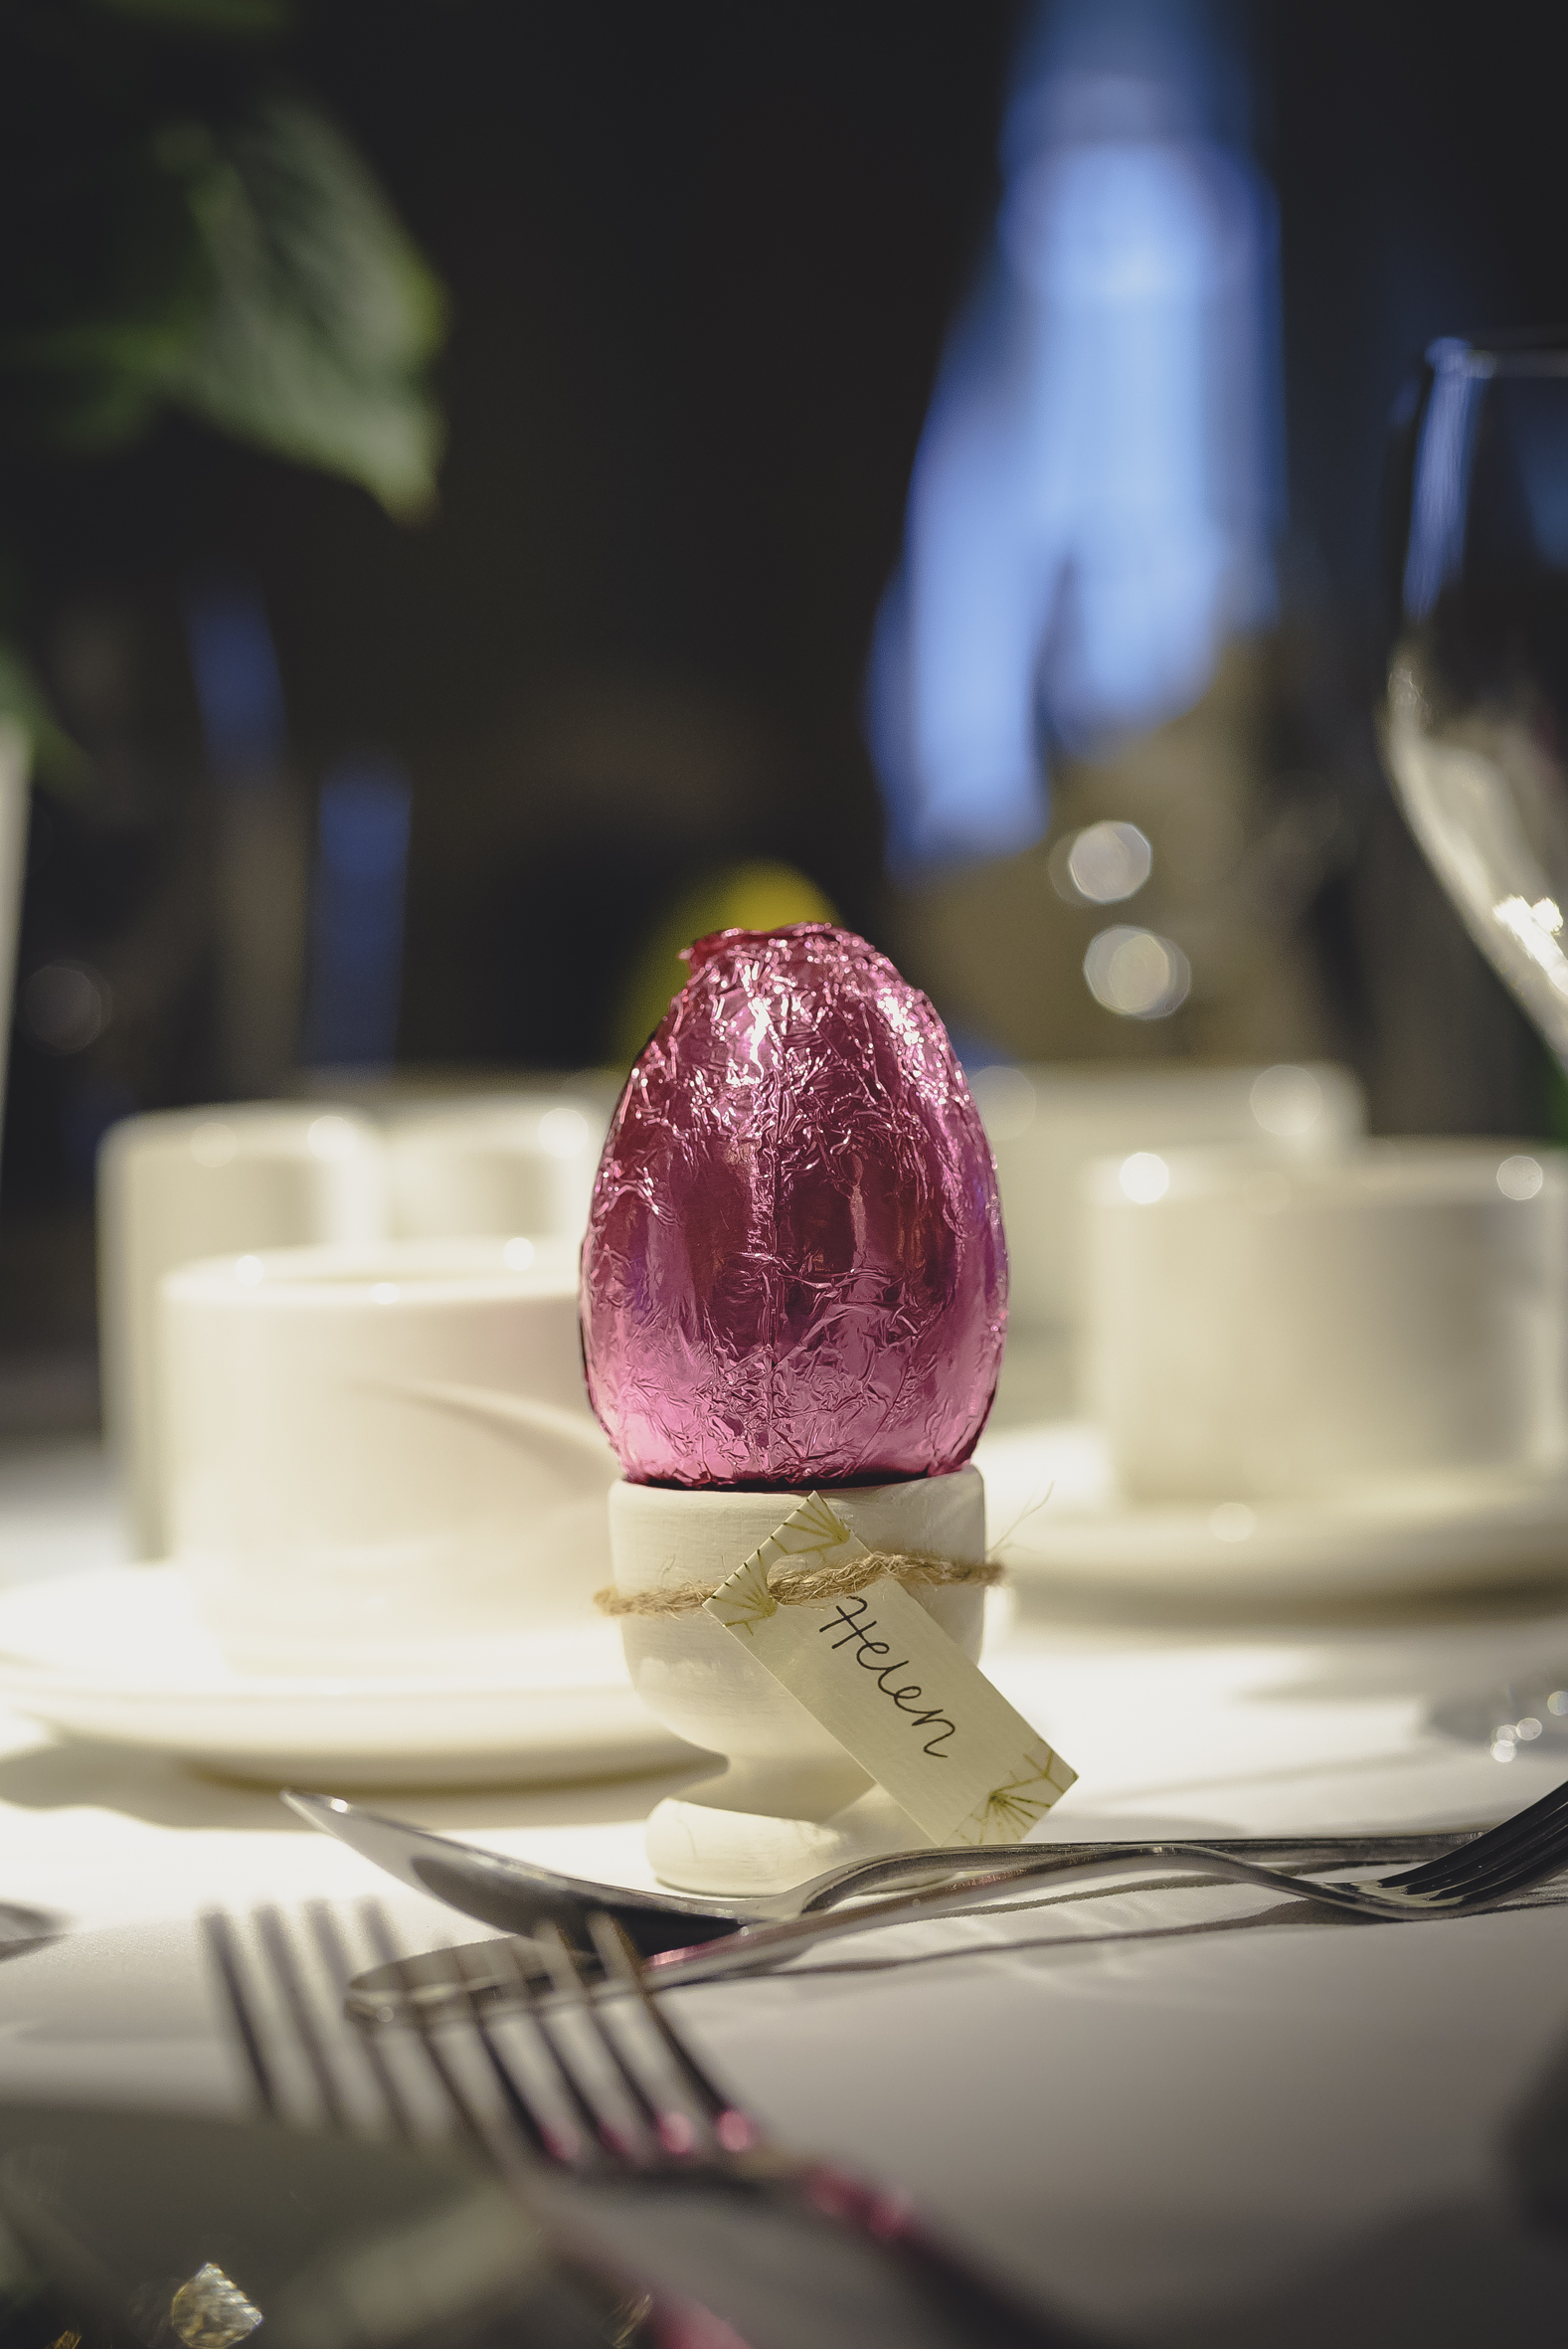 As the wedding fell over Easter, I painted little egg cups and gave everyone a personalised Easter egg as a place setting and favour